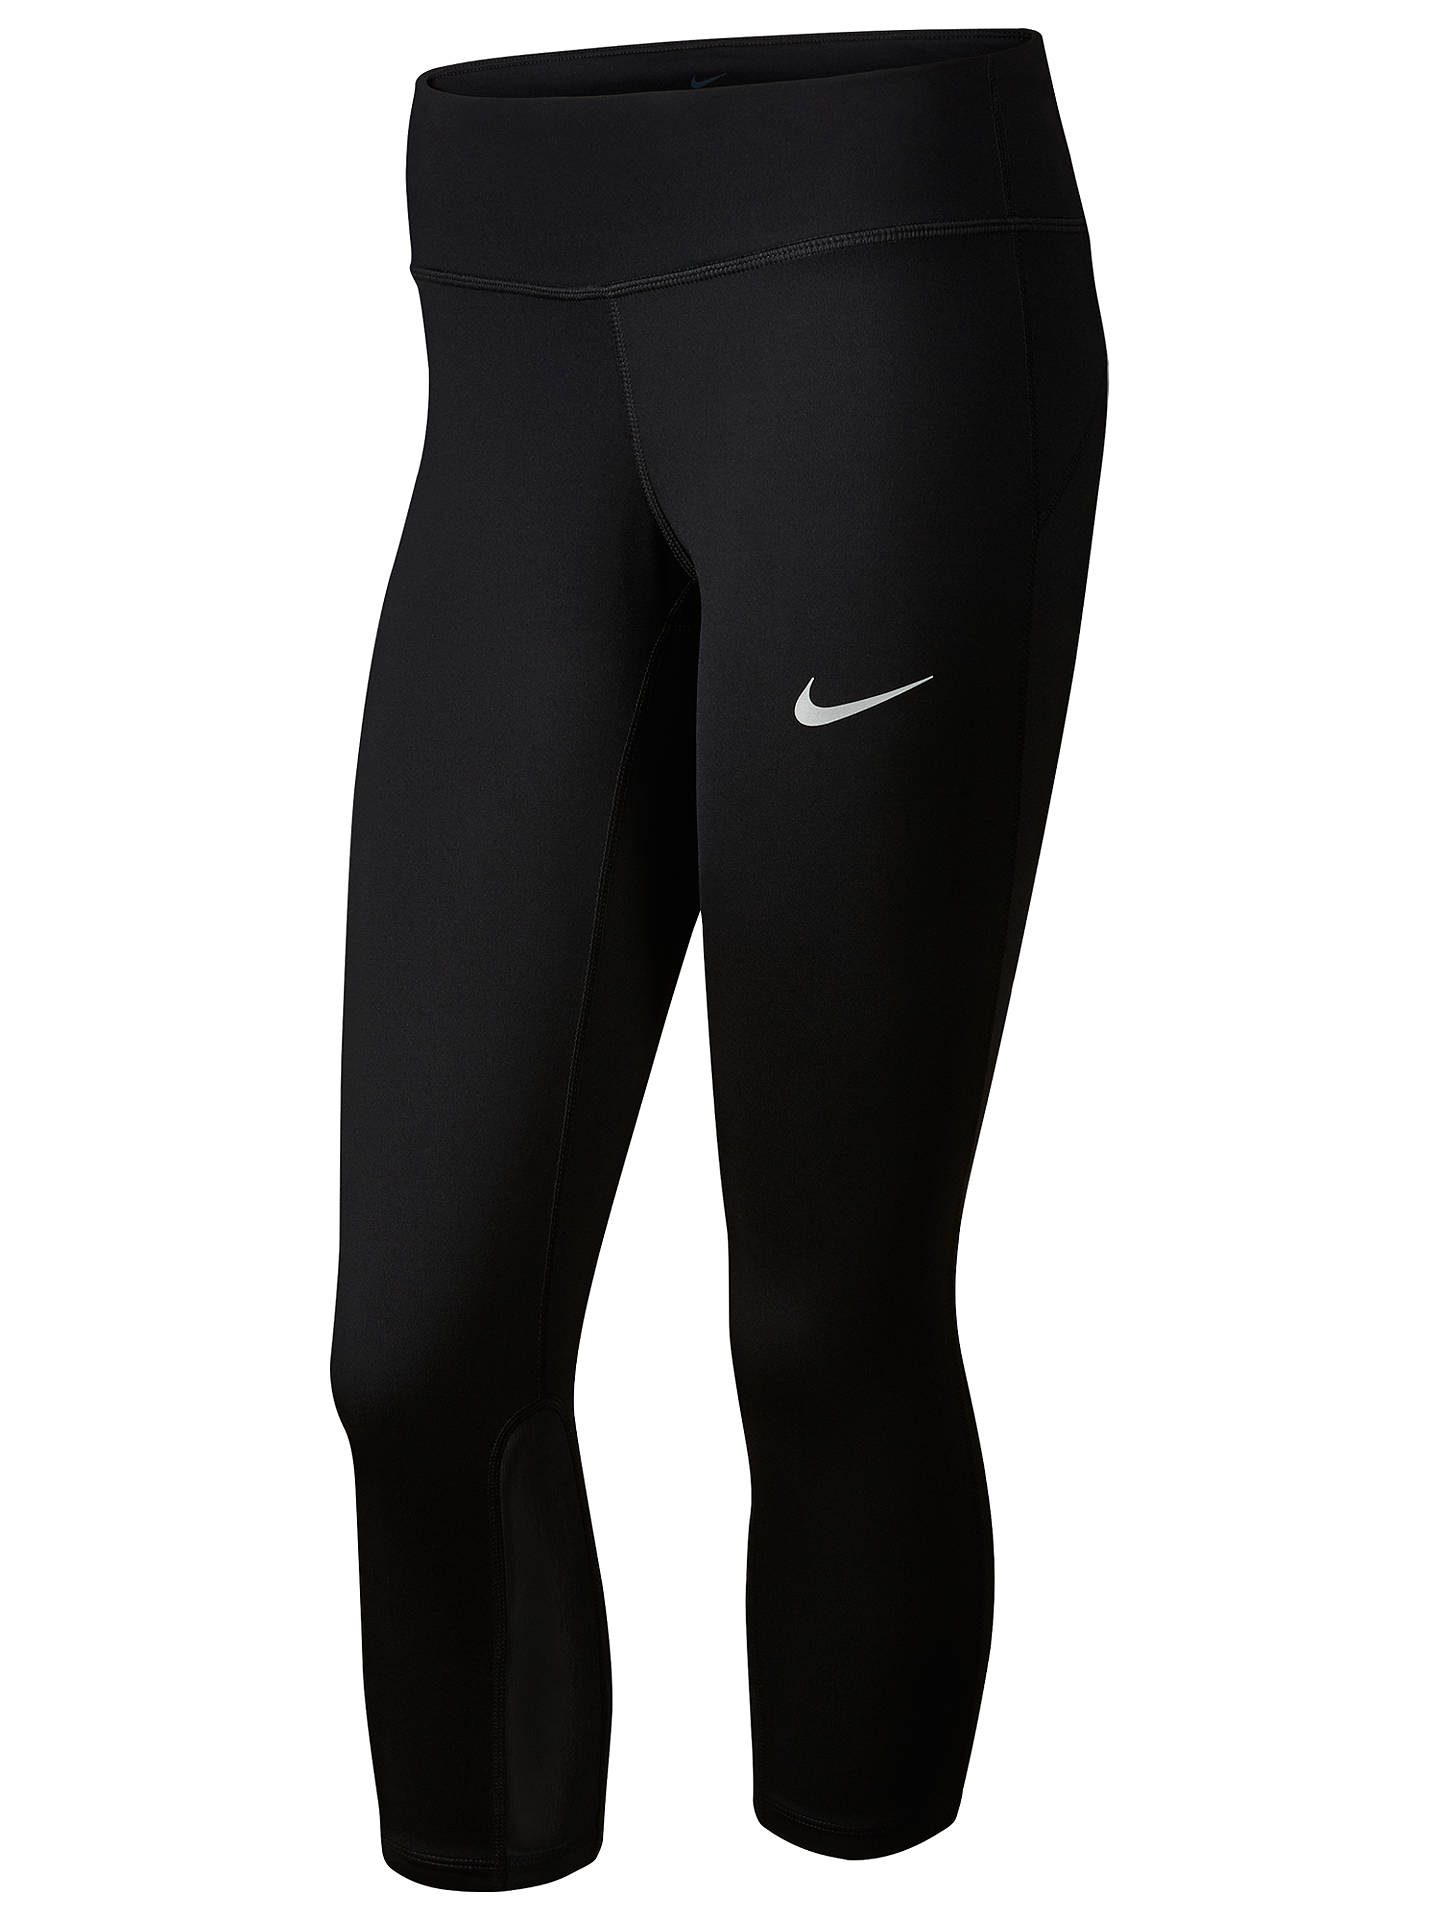 8e24a814788ffc Buy Nike Power Epic Run Cropped Running Tights, Black, XS Online at  johnlewis.